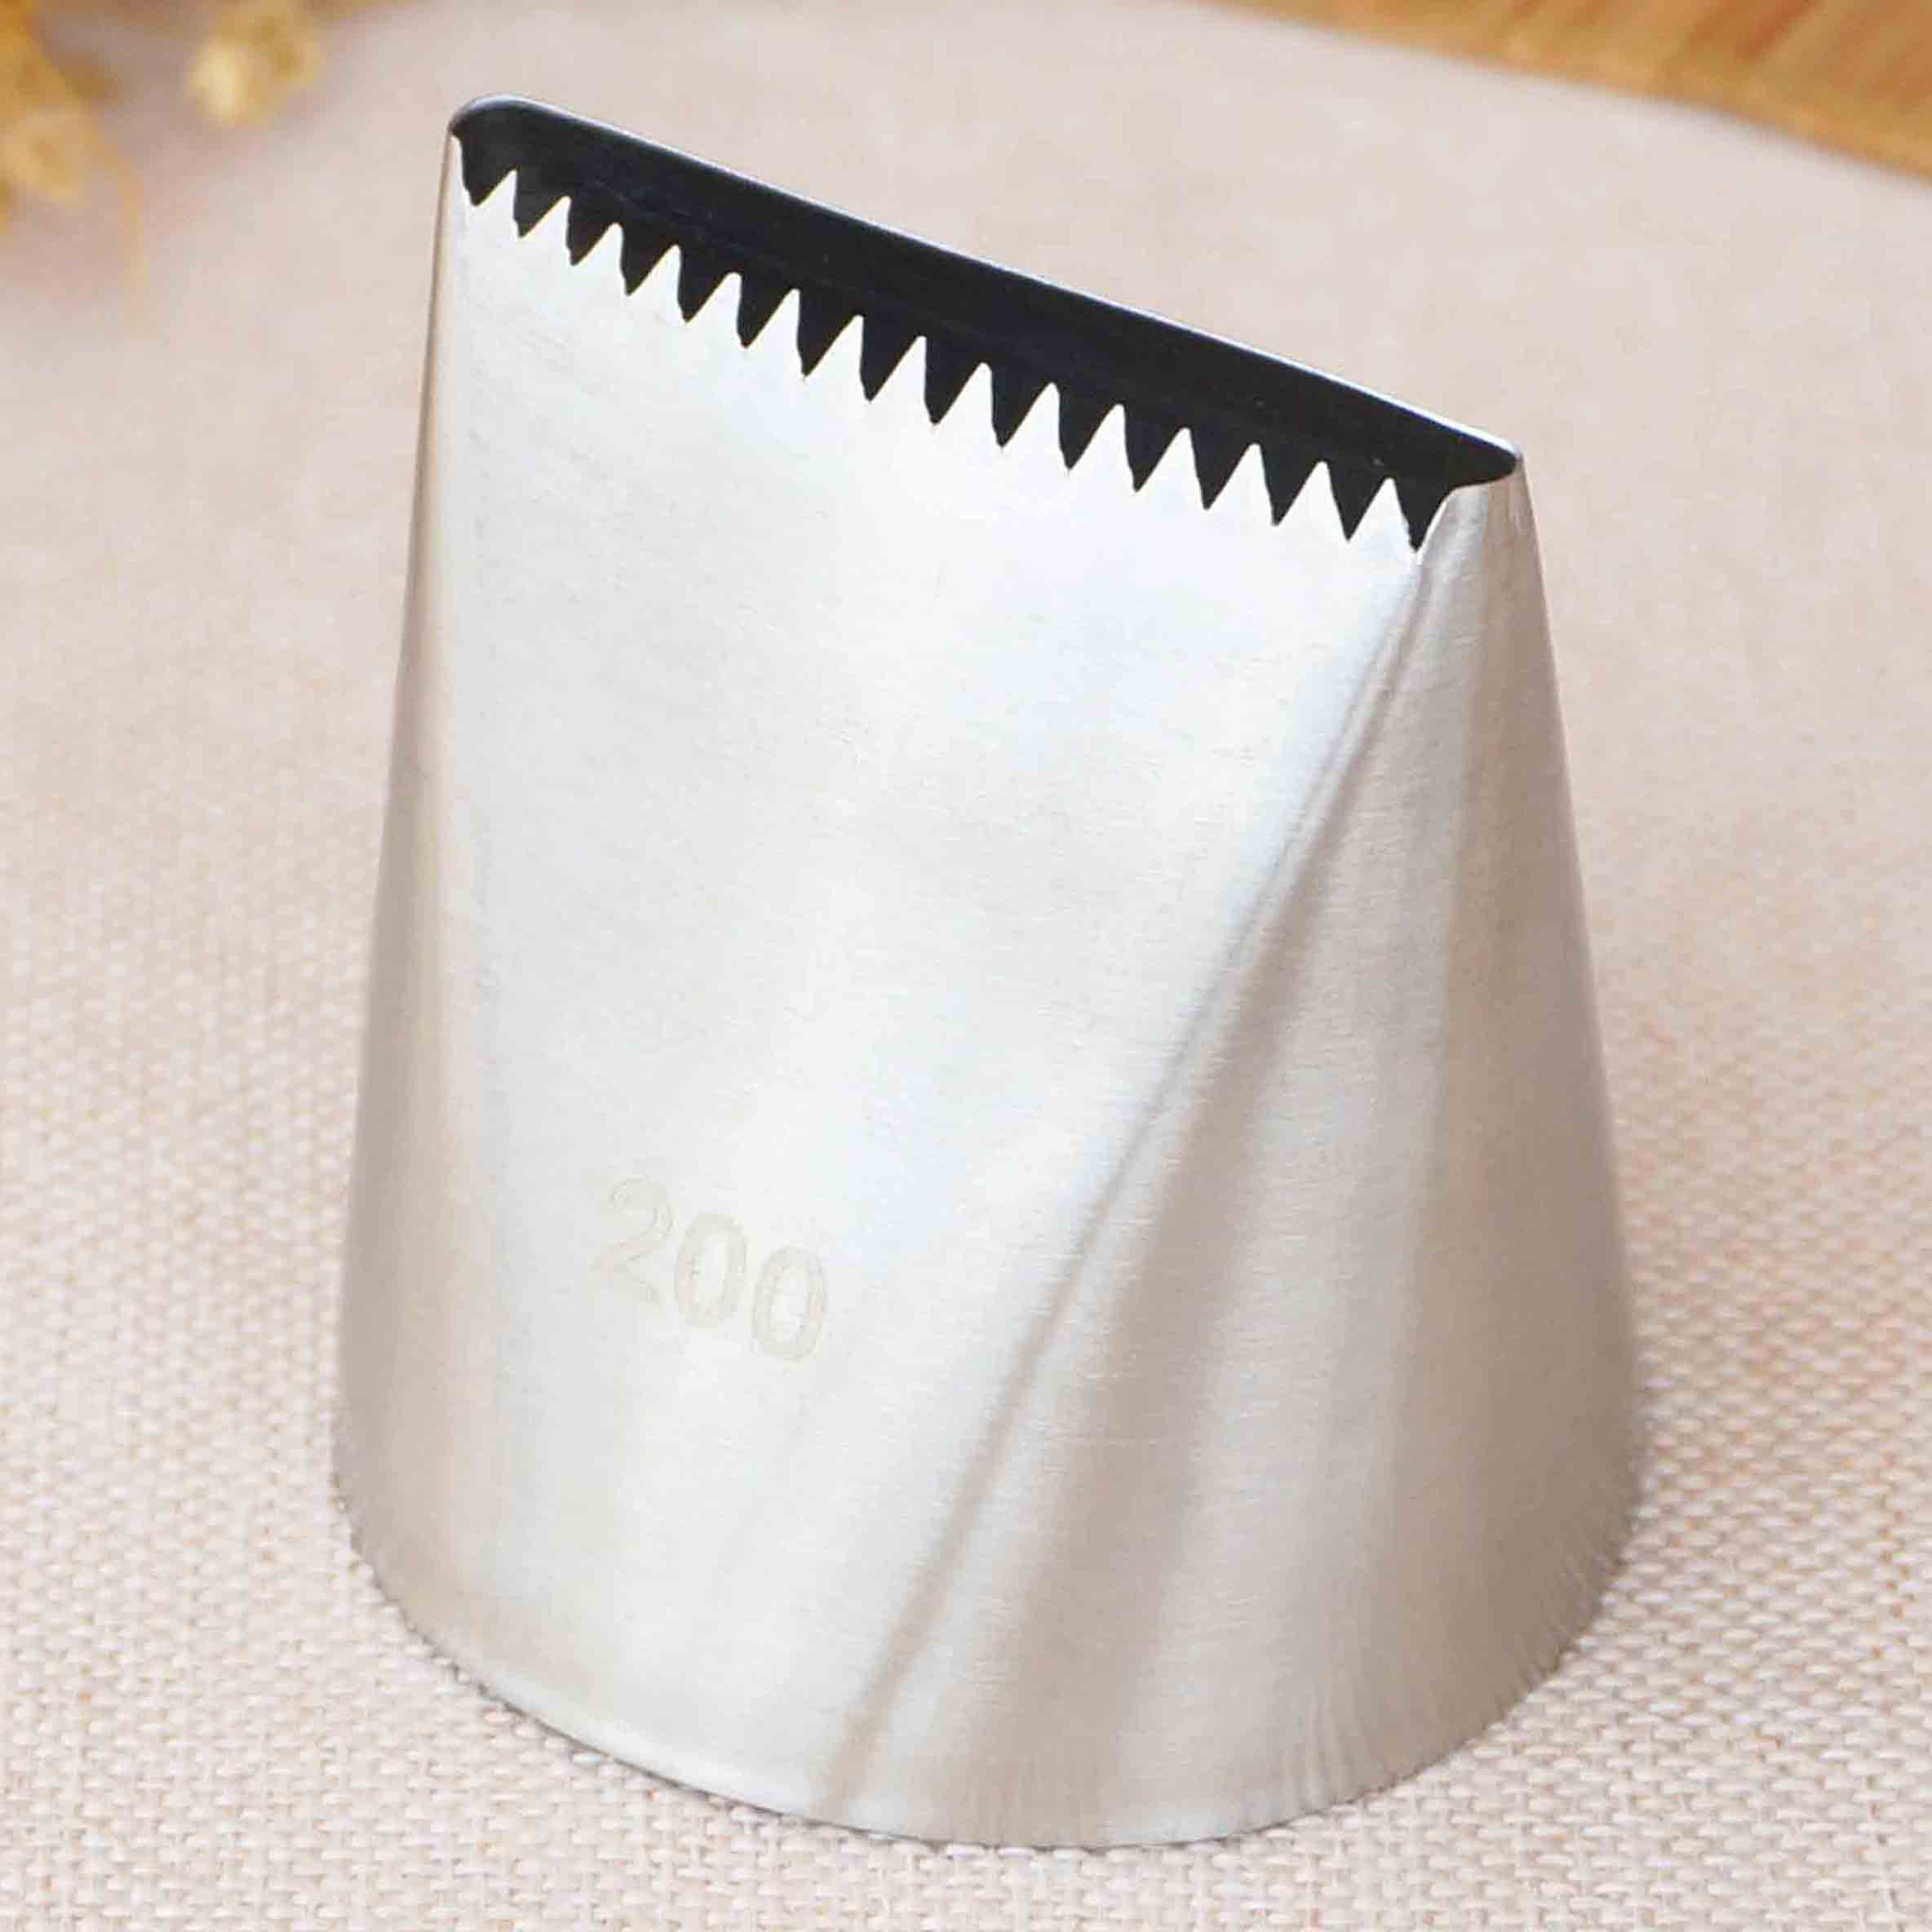 #200 Large Size Basketweave Piping Nozzle Basket Weave Cake Decorating Tip Nozzle Baking Tools Bakeware Icing Tips